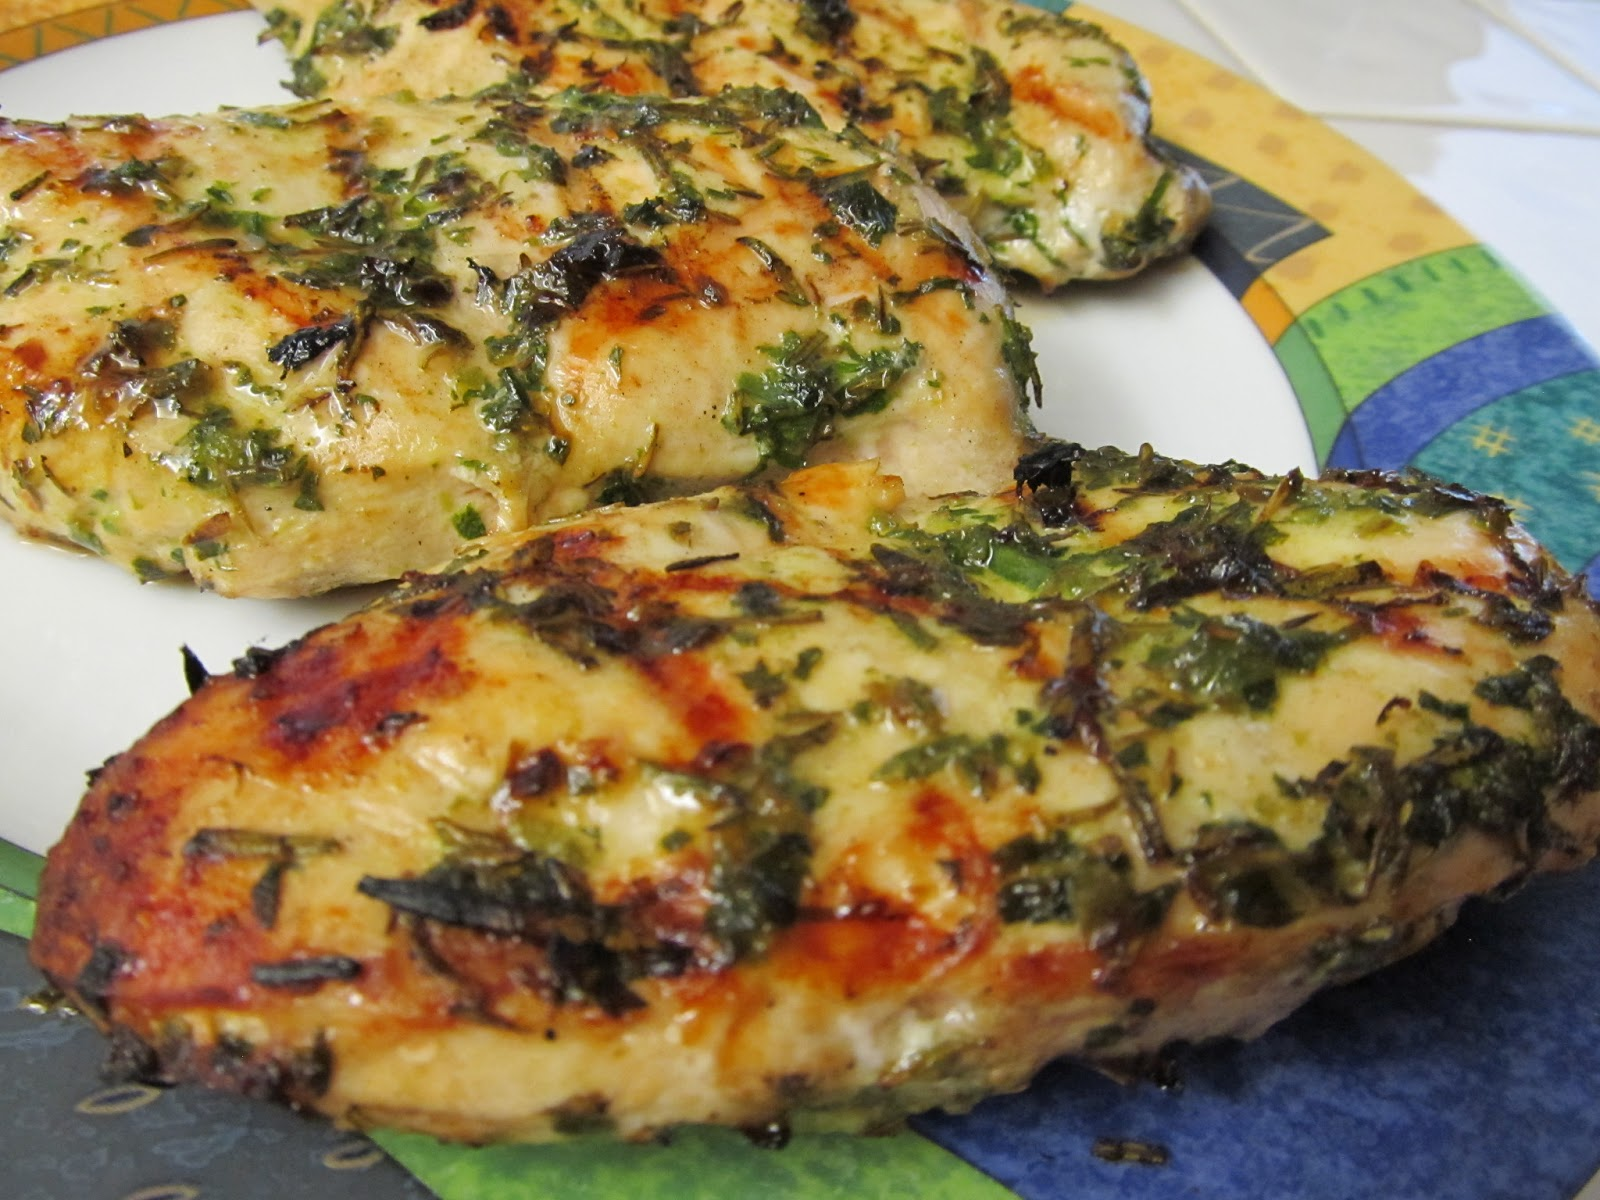 Jenn's Food Journey: Five-Herb Grilled Chicken with Green Aioli